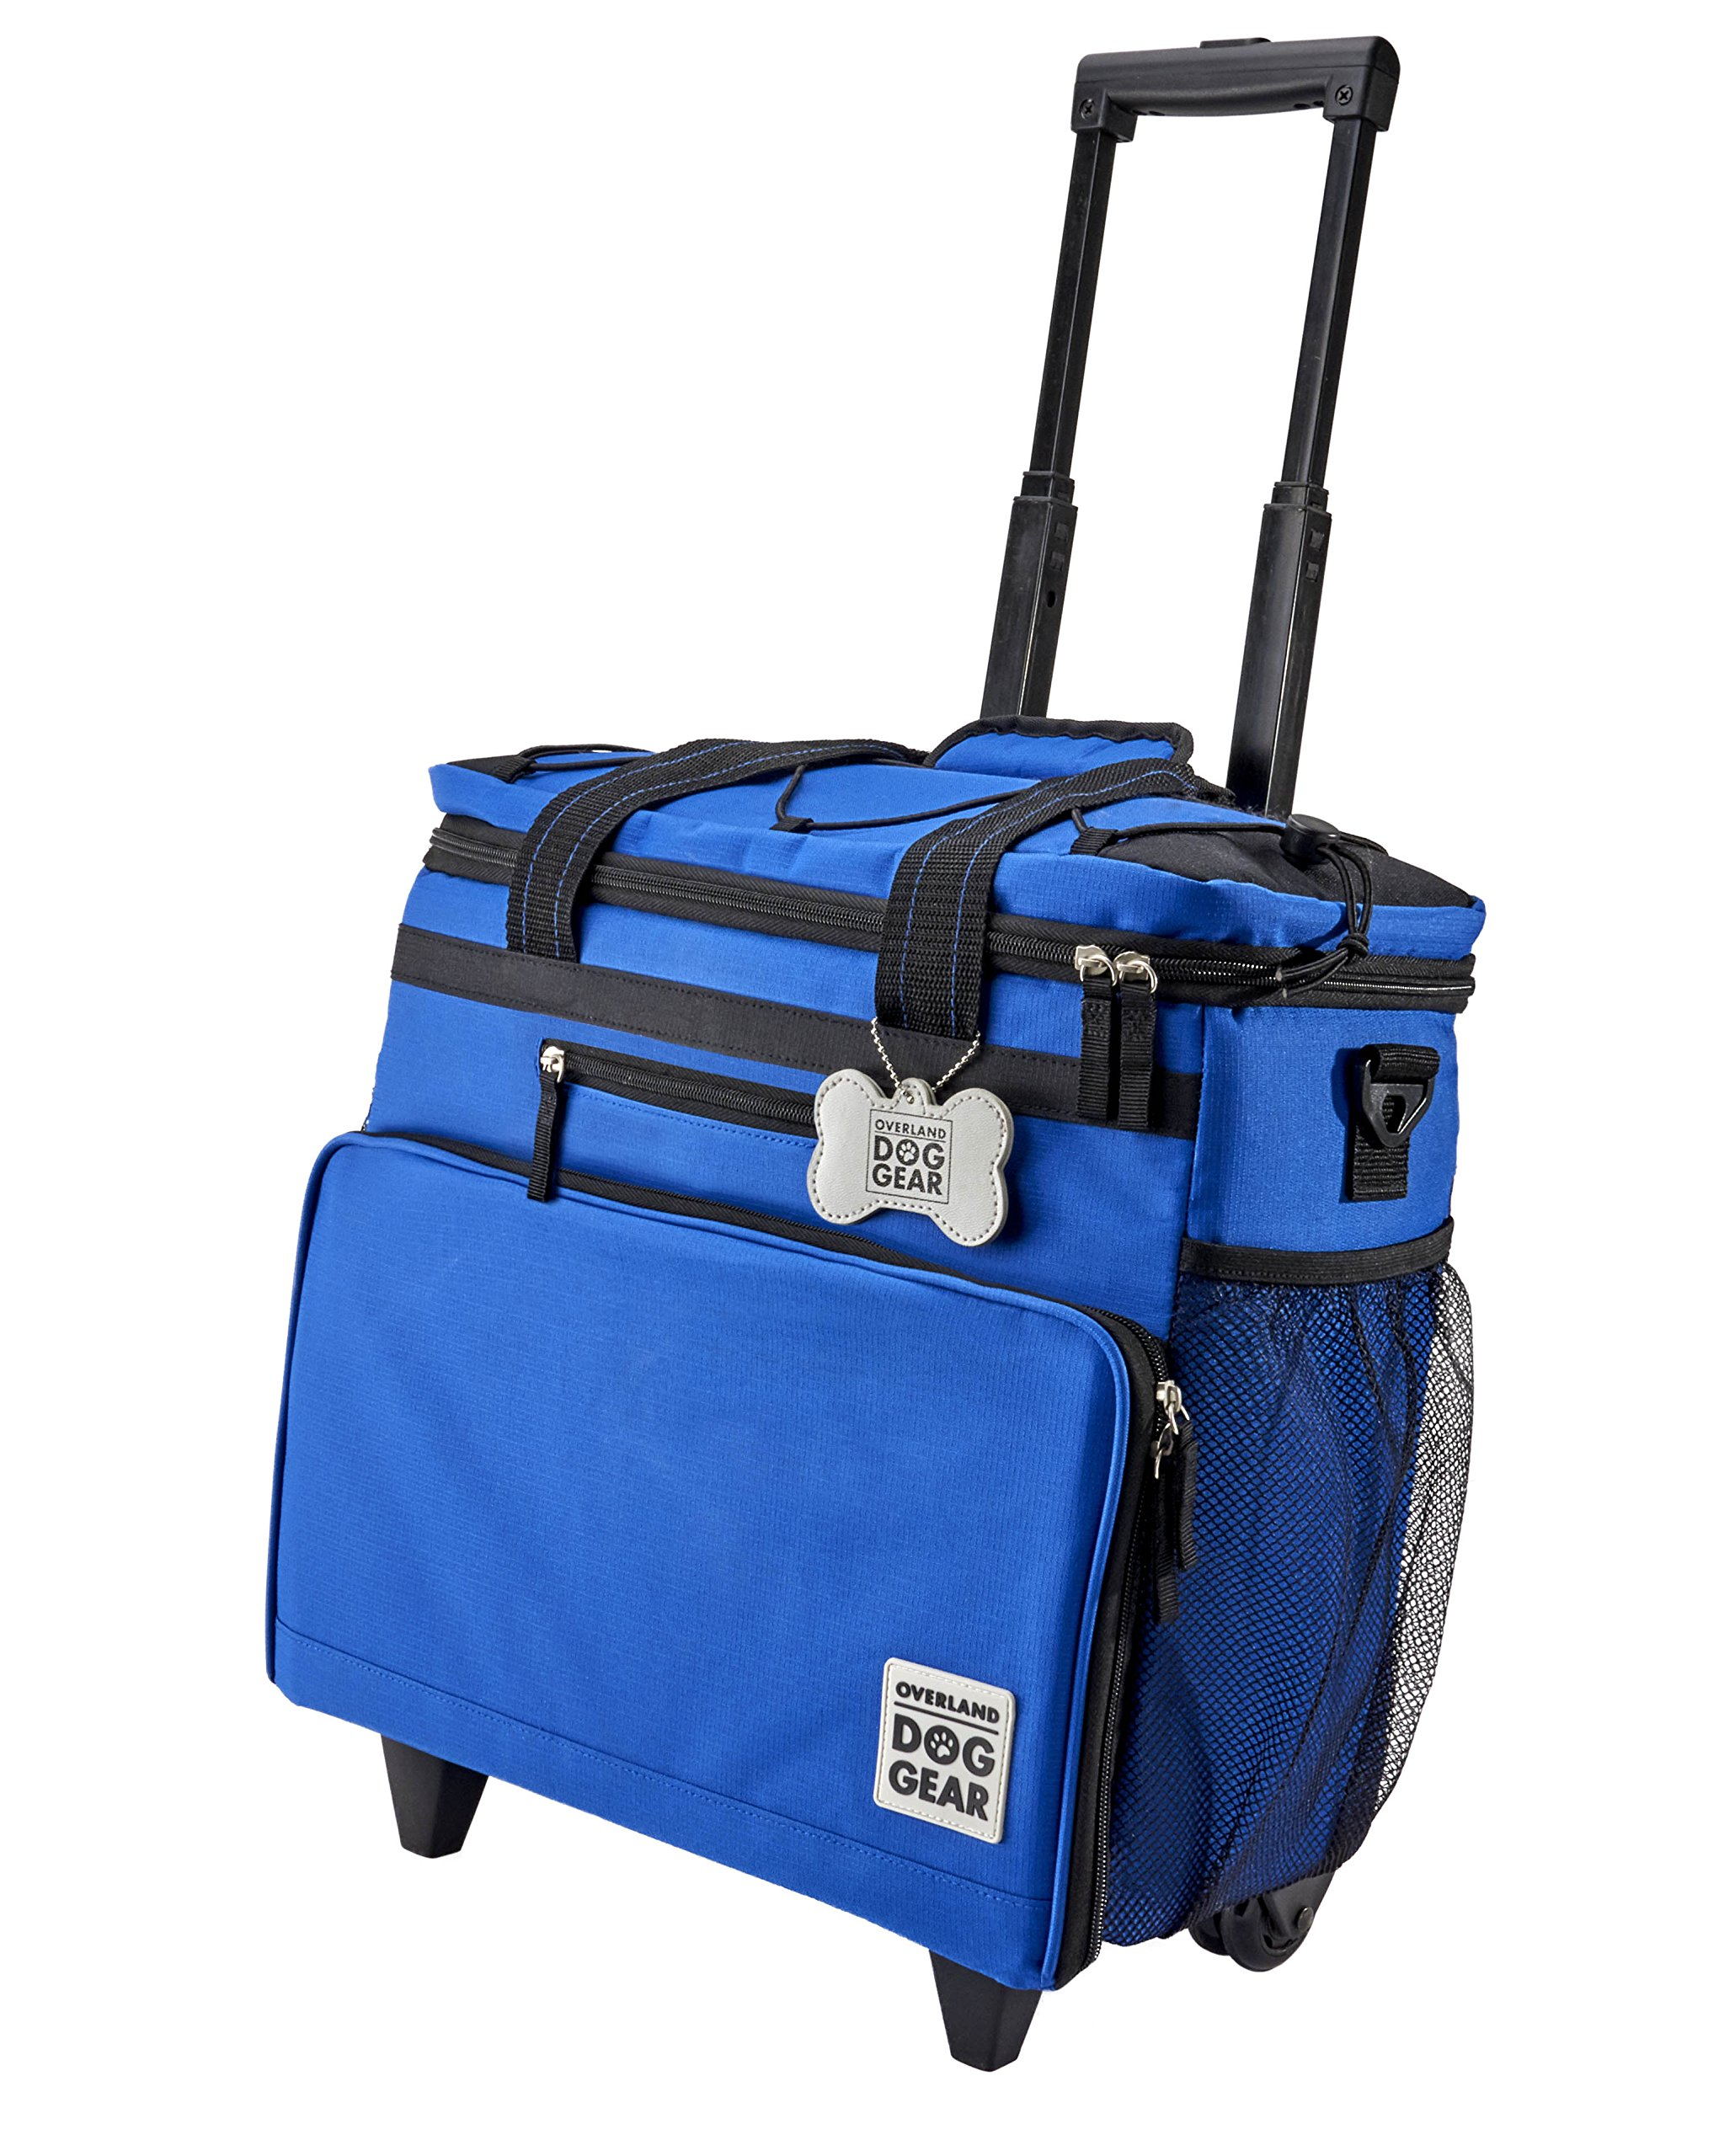 Overland Dog Gear, Dog Travel Bag, Rolling Week Away Bag, Includes Lined Food Carriers and 2 Collapsible Dog Bowl, Royal Blue by Overland Dog Gear